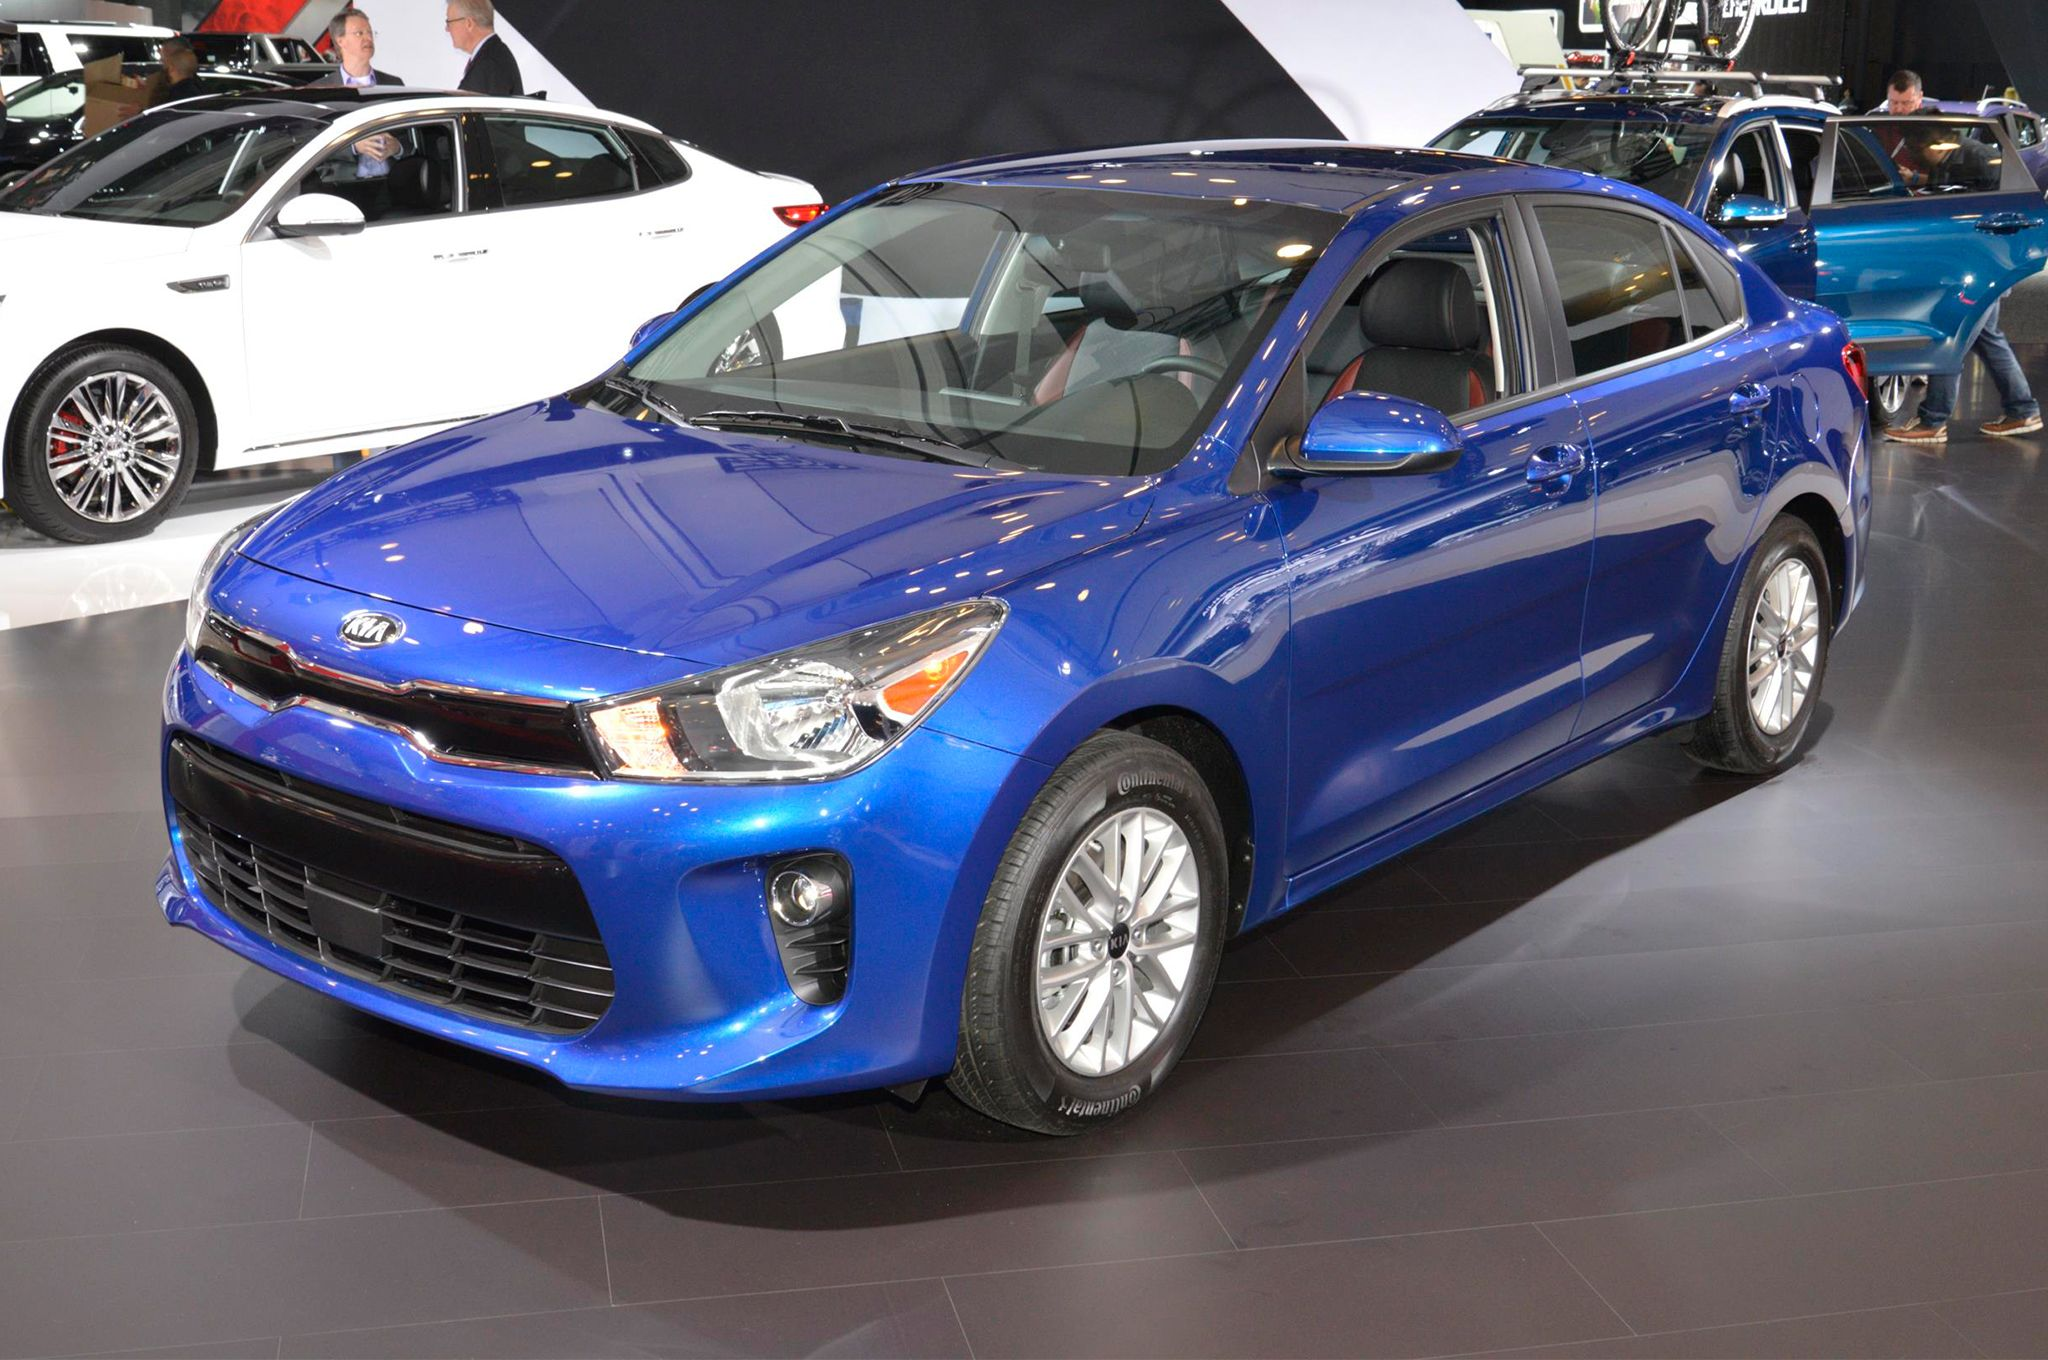 new car releases this year2018 Kia Rio Release Date  2018 CARS RELEASE 2019  KIA